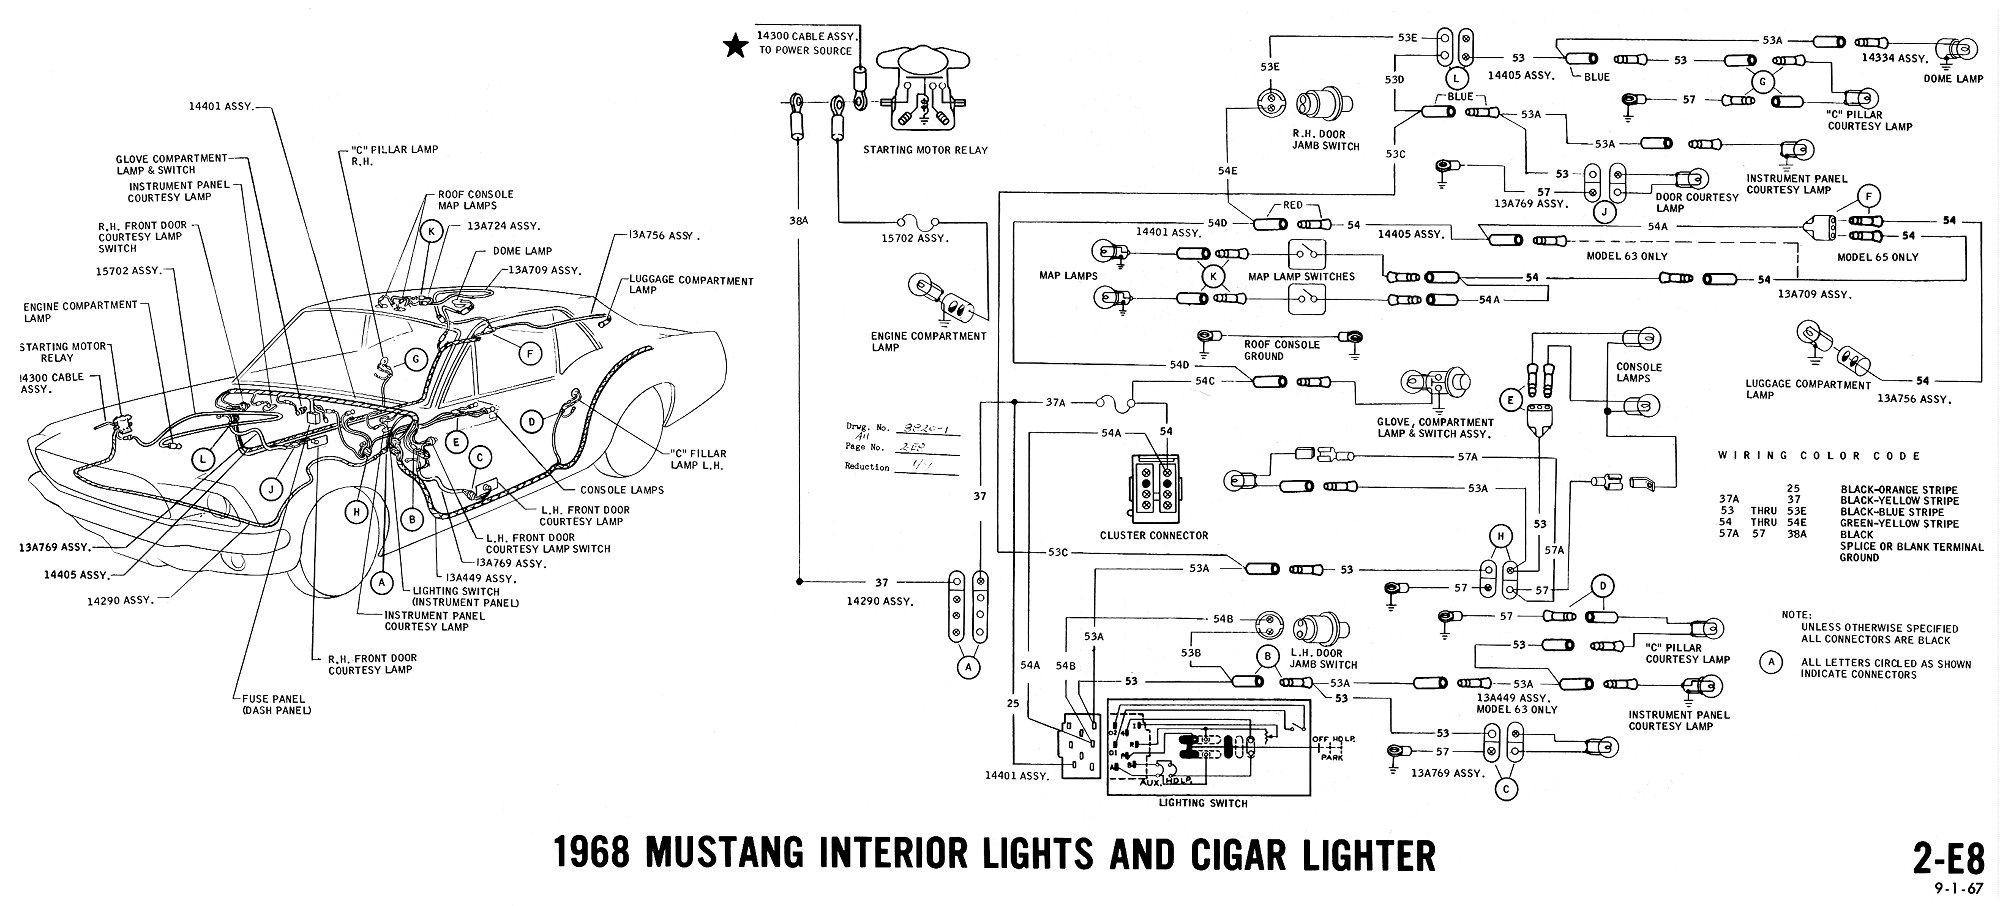 wrg 2228] t5c honda gx620 wiring diagram Honda GX620 Water Pump 1968 mustang wiring diagrams evolving software rh peterfranza com